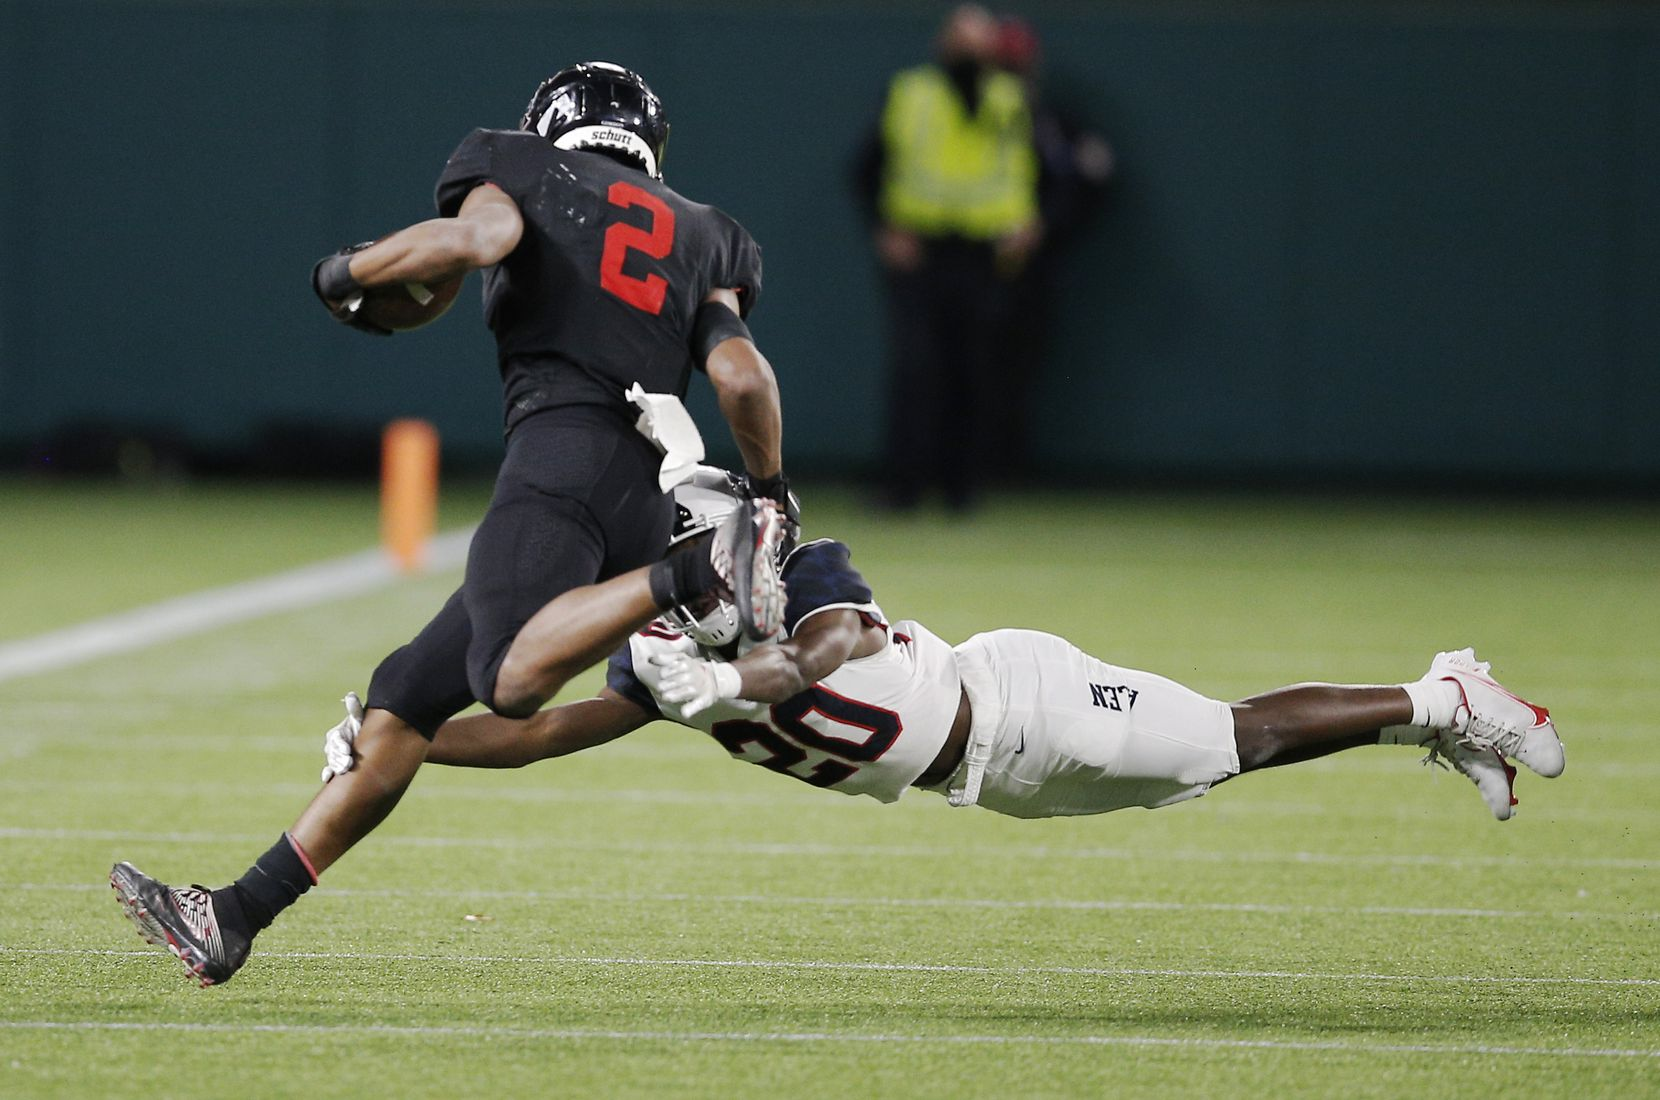 Euless Trinity junior running back Ollie Gordon (2) attempts to avoid Allen junior defensive back Sign Shuva (20) during the first half of a high school Class 6A Division I Region I semifinal football game at Globe Life Park in Arlington, Saturday, December 26, 2020. (Brandon Wade/Special Contributor)